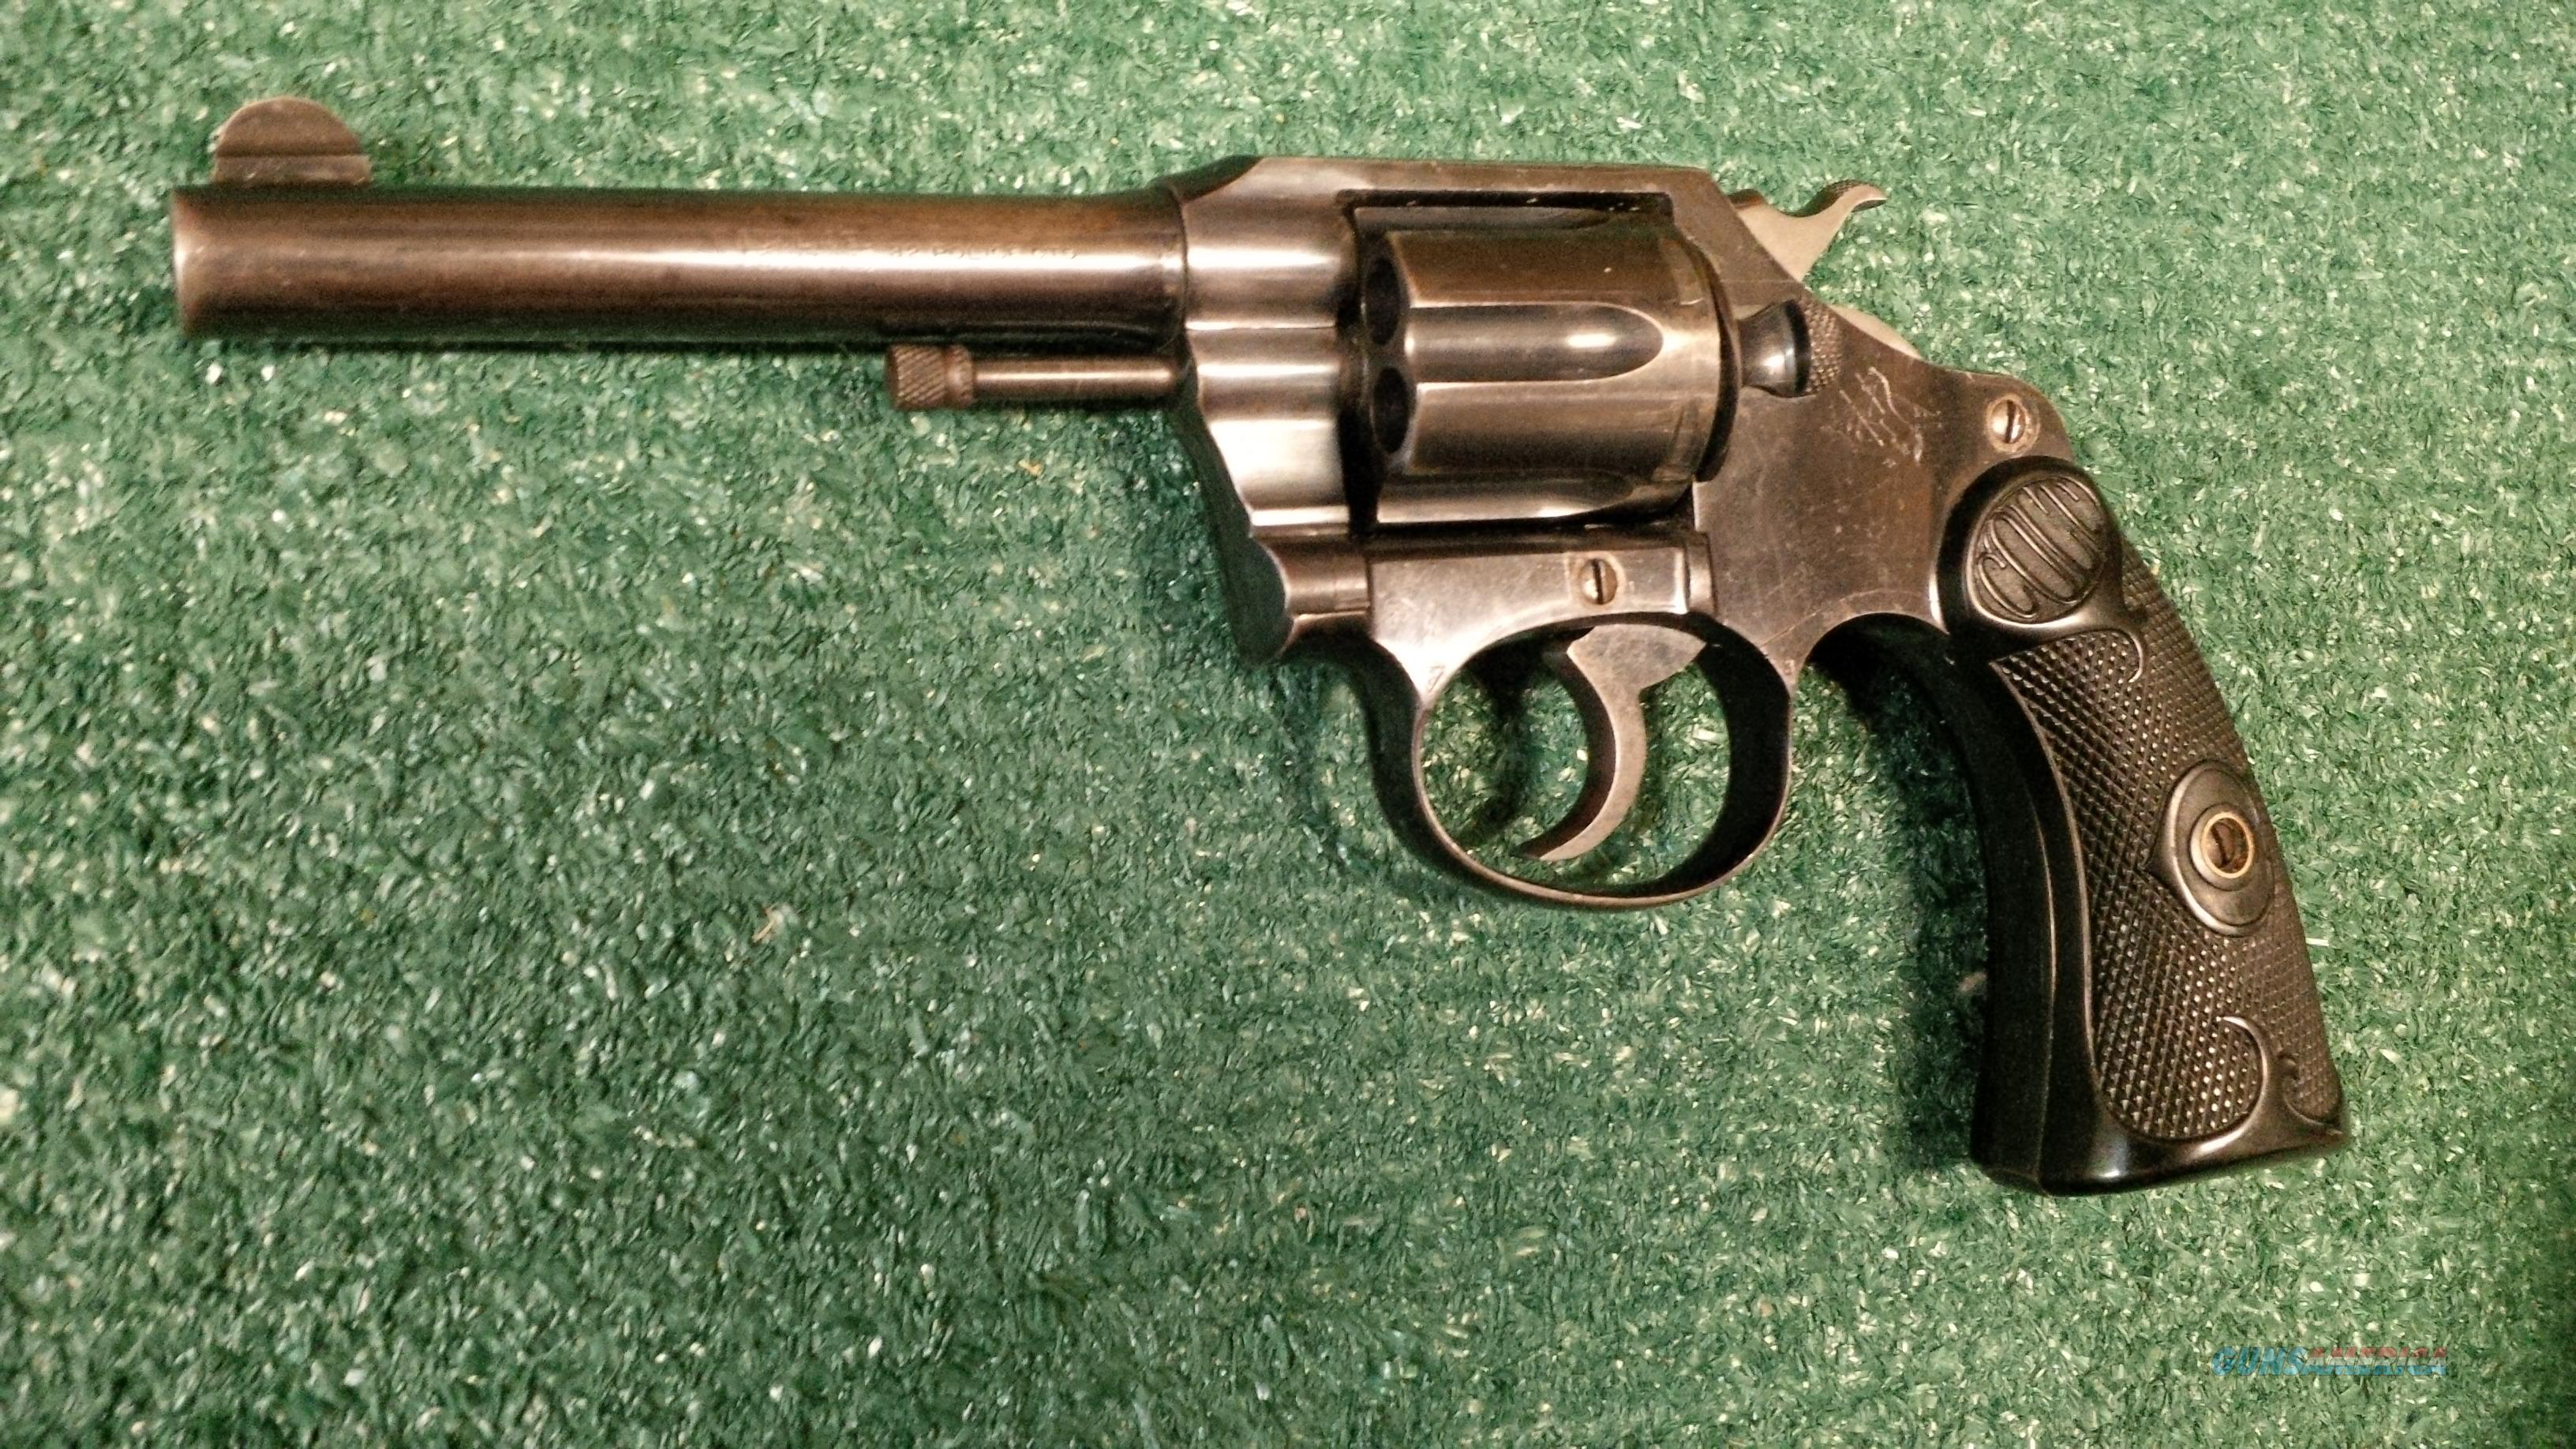 Colt Police Positive .32 Police Ctg 4 Inch FIRST YEAR PRODUCTION!! Double Action Revolver   Guns > Pistols > Colt Double Action Revolvers- Pre-1945